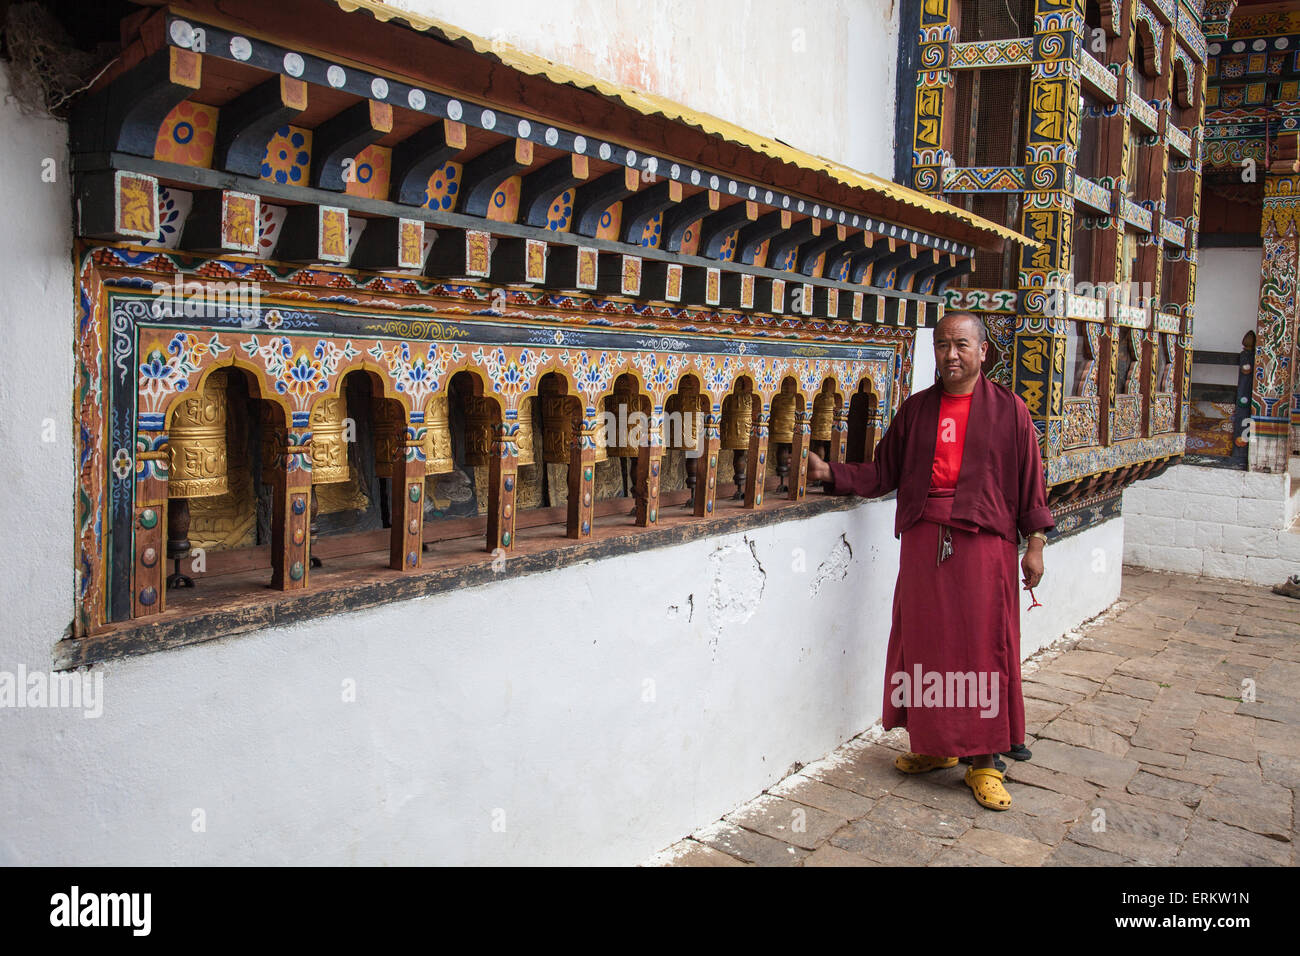 A monk rotates the roller-books of the Monastery of Punakha Dzong which are used to pray, Paro, Bhutan, Asia Stock Photo